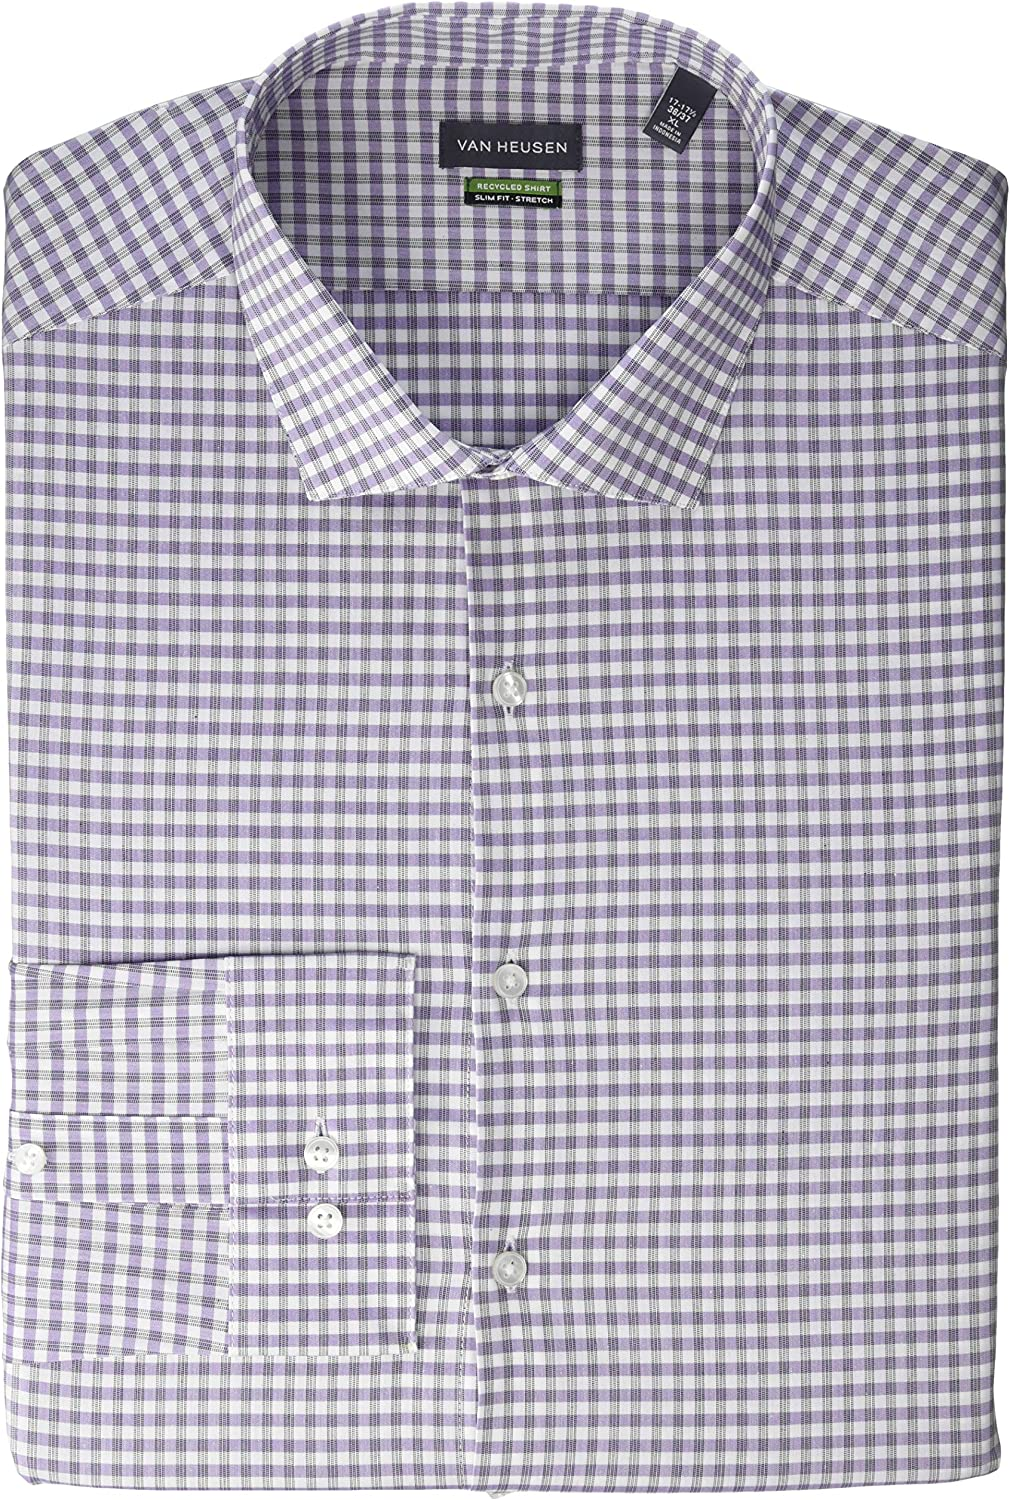 Van Heusen National uniform Super special price free shipping Men's Dress Shirt Stretch Recycled Slim Fit